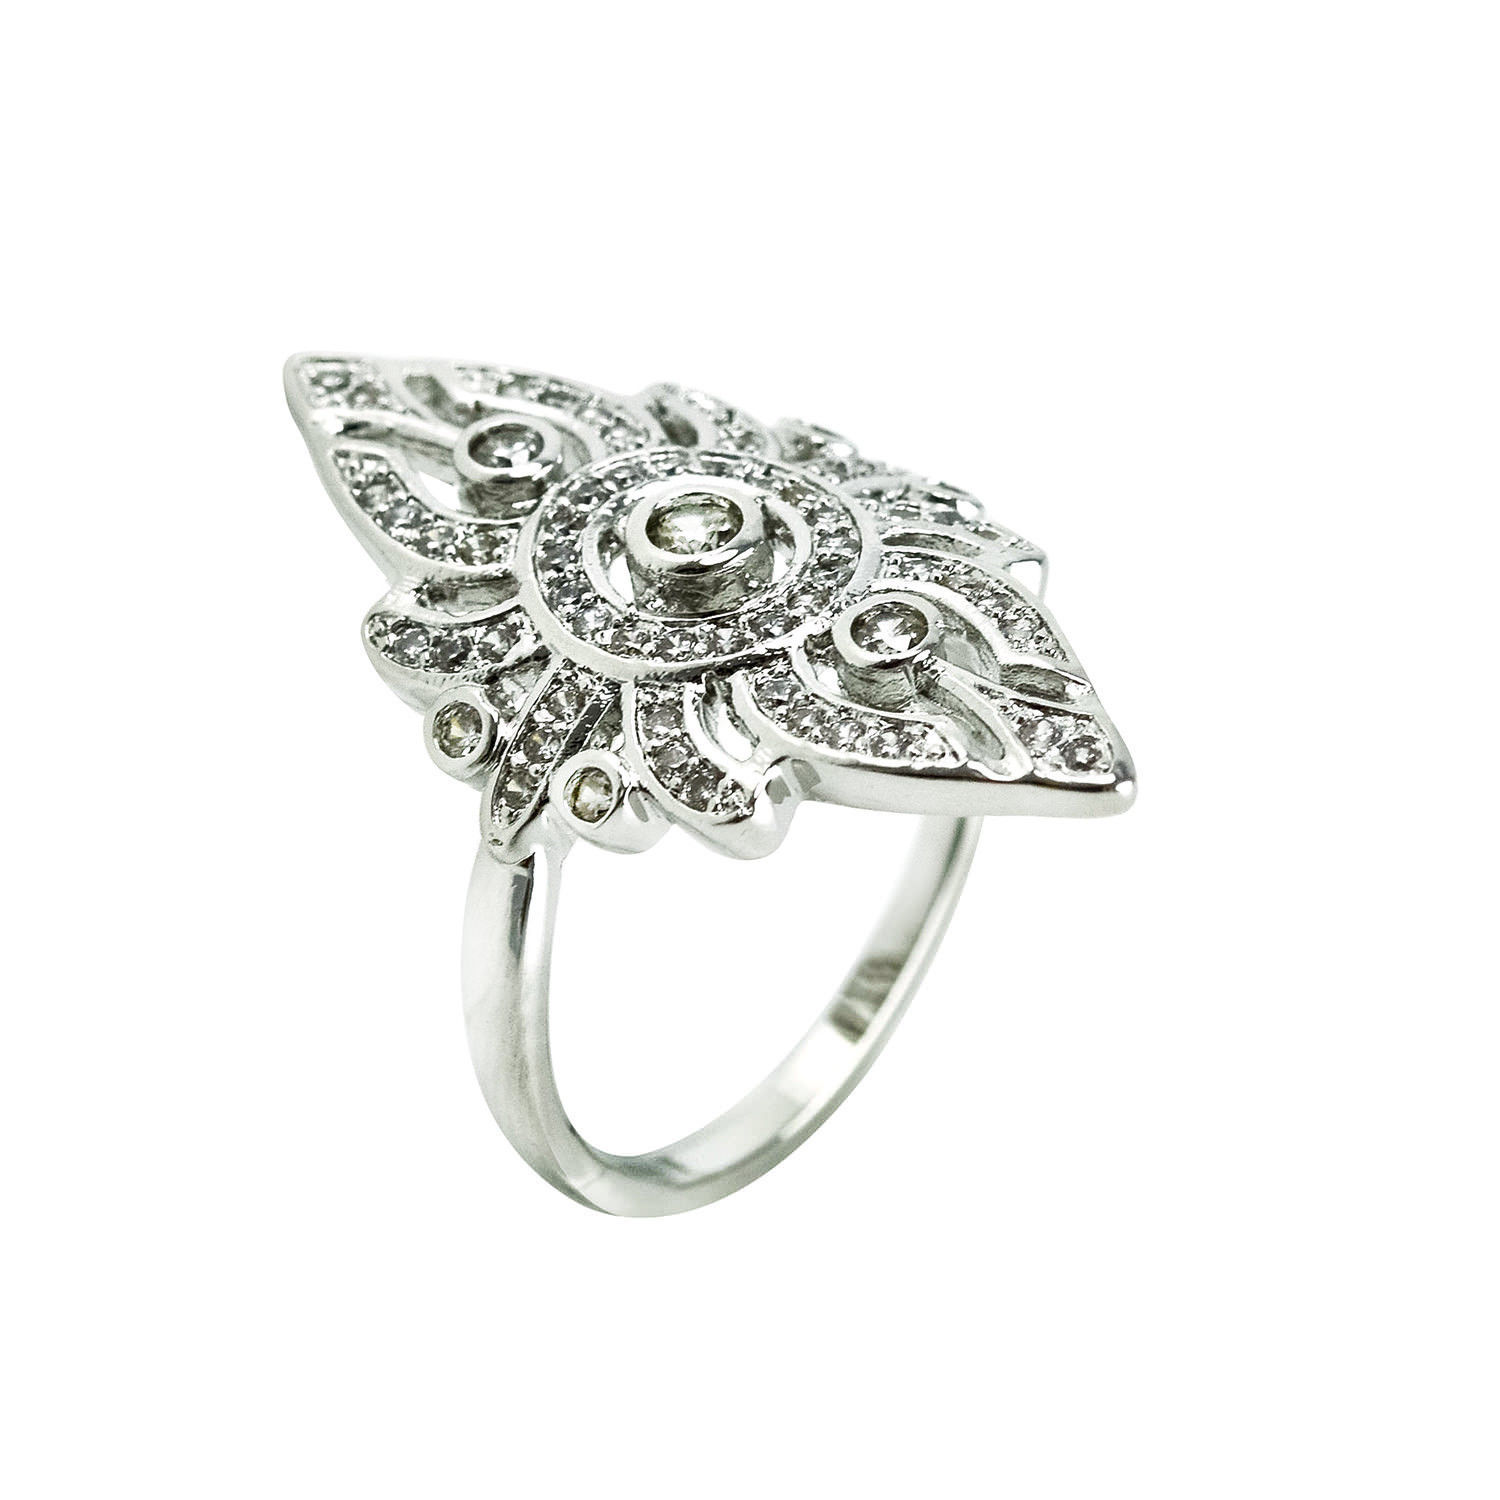 Glitzy Pave AAA Cubic Zirconia Filligree Style Rhodium Knuckle Ring